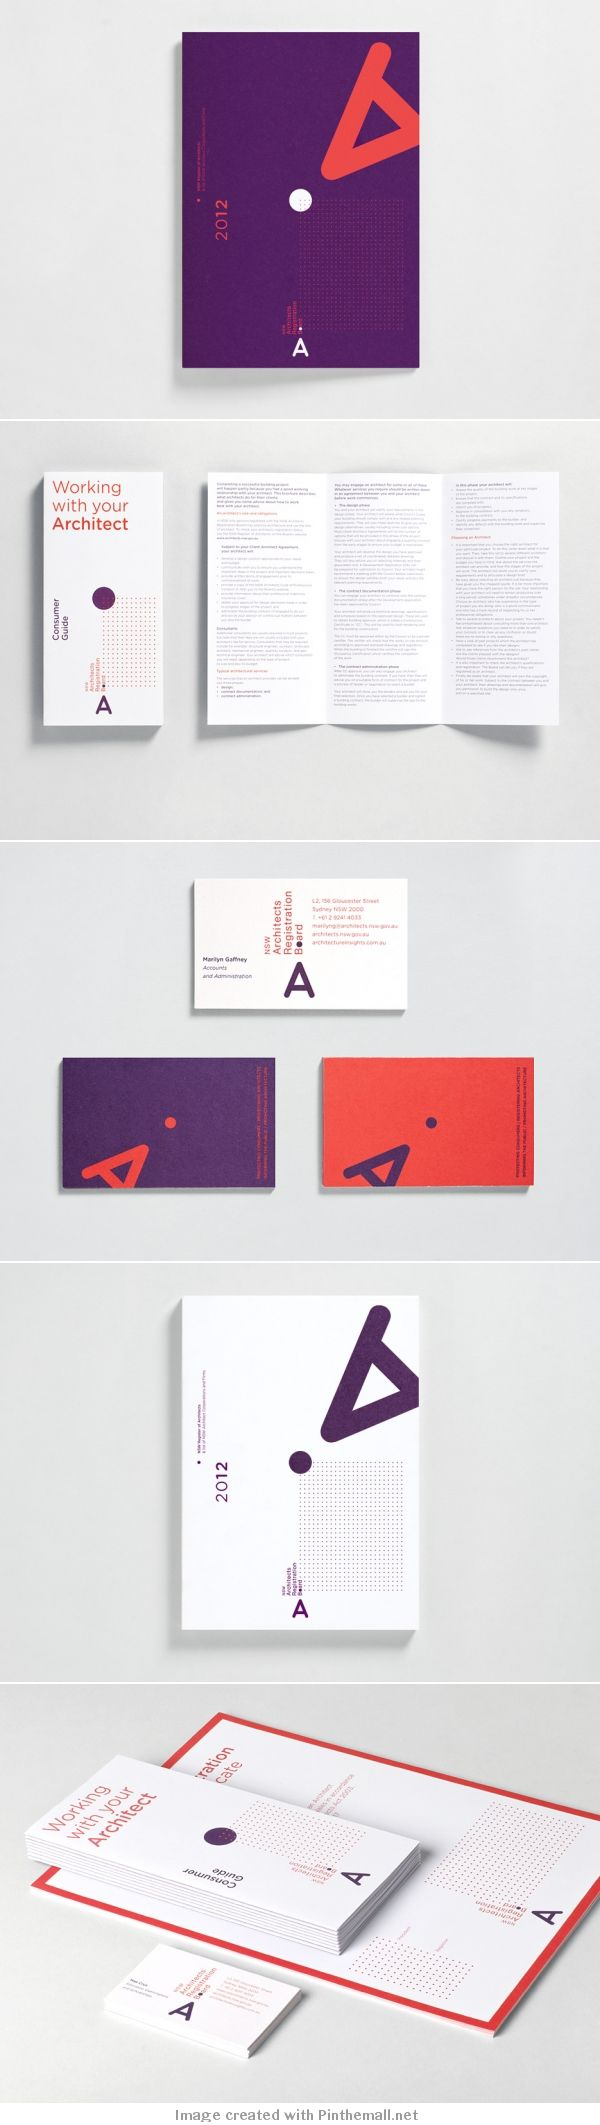 NSW Architects Registration Board by Toko